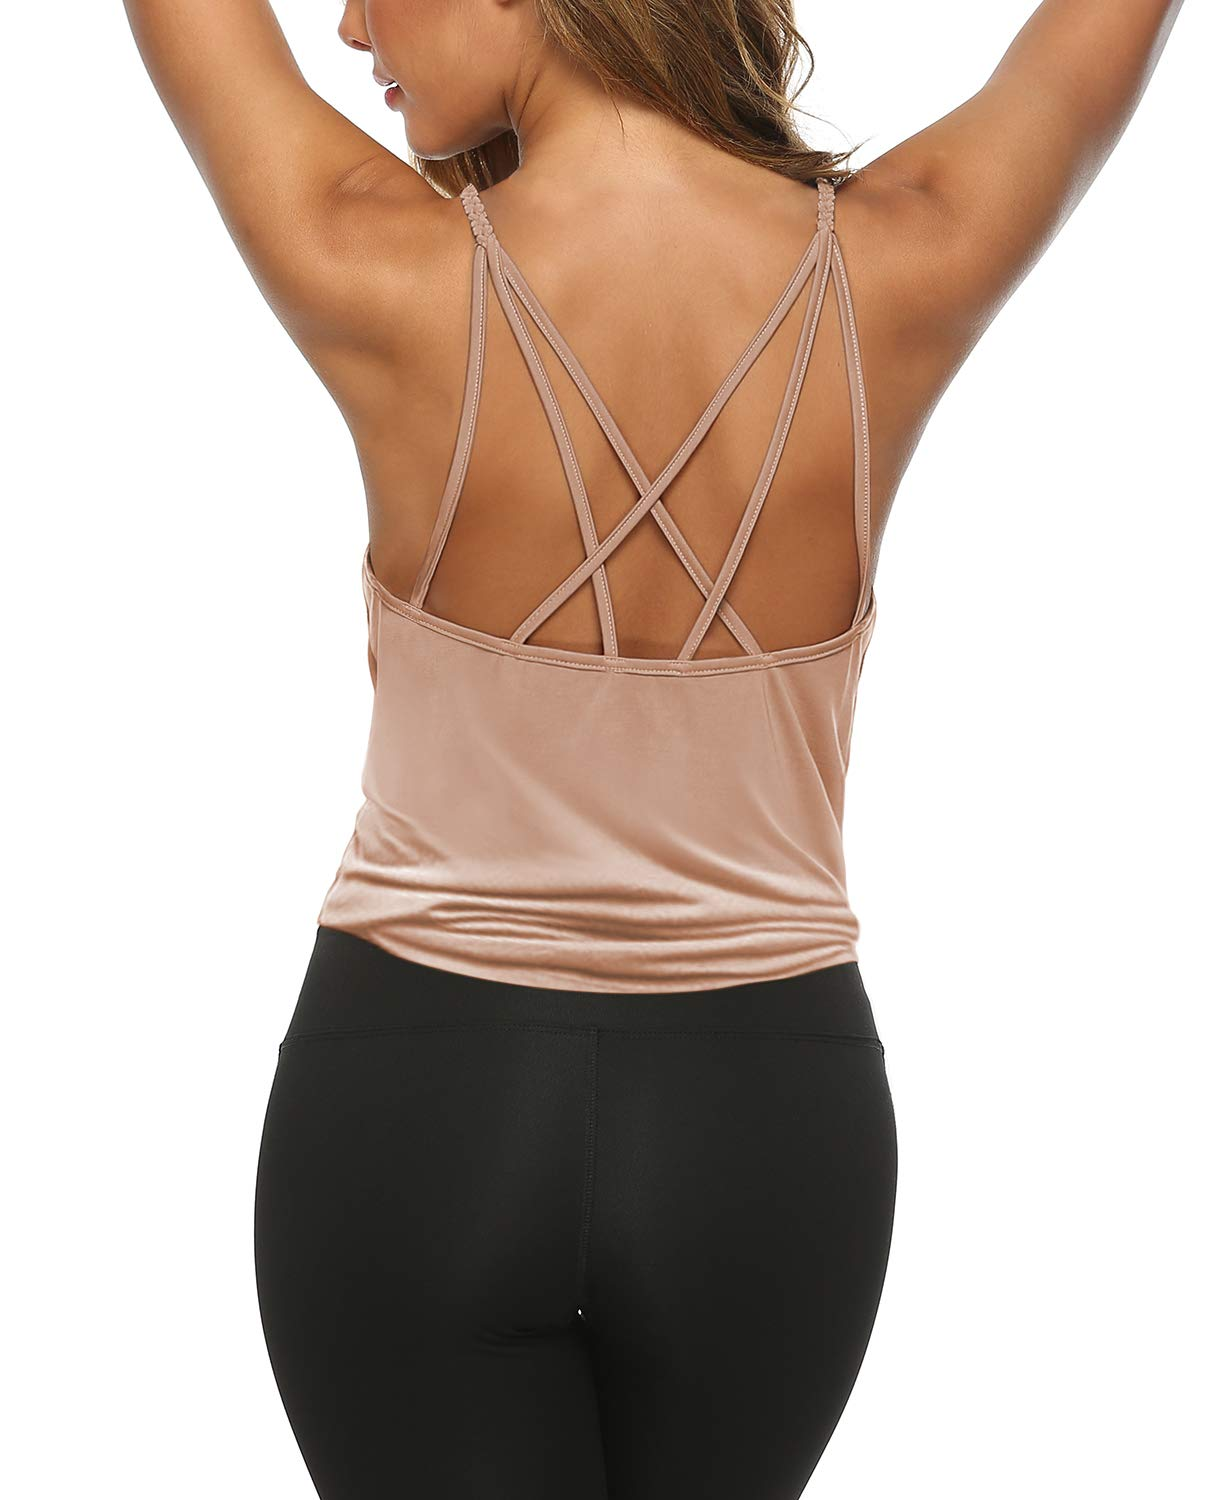 OYANUS Womens Summer Workout Tank Tops Open Back Shirts Strappy Yoga Tank Tops Running Sports Quick Dry Activewear Clothes for Juniors Bisque S by OYANUS